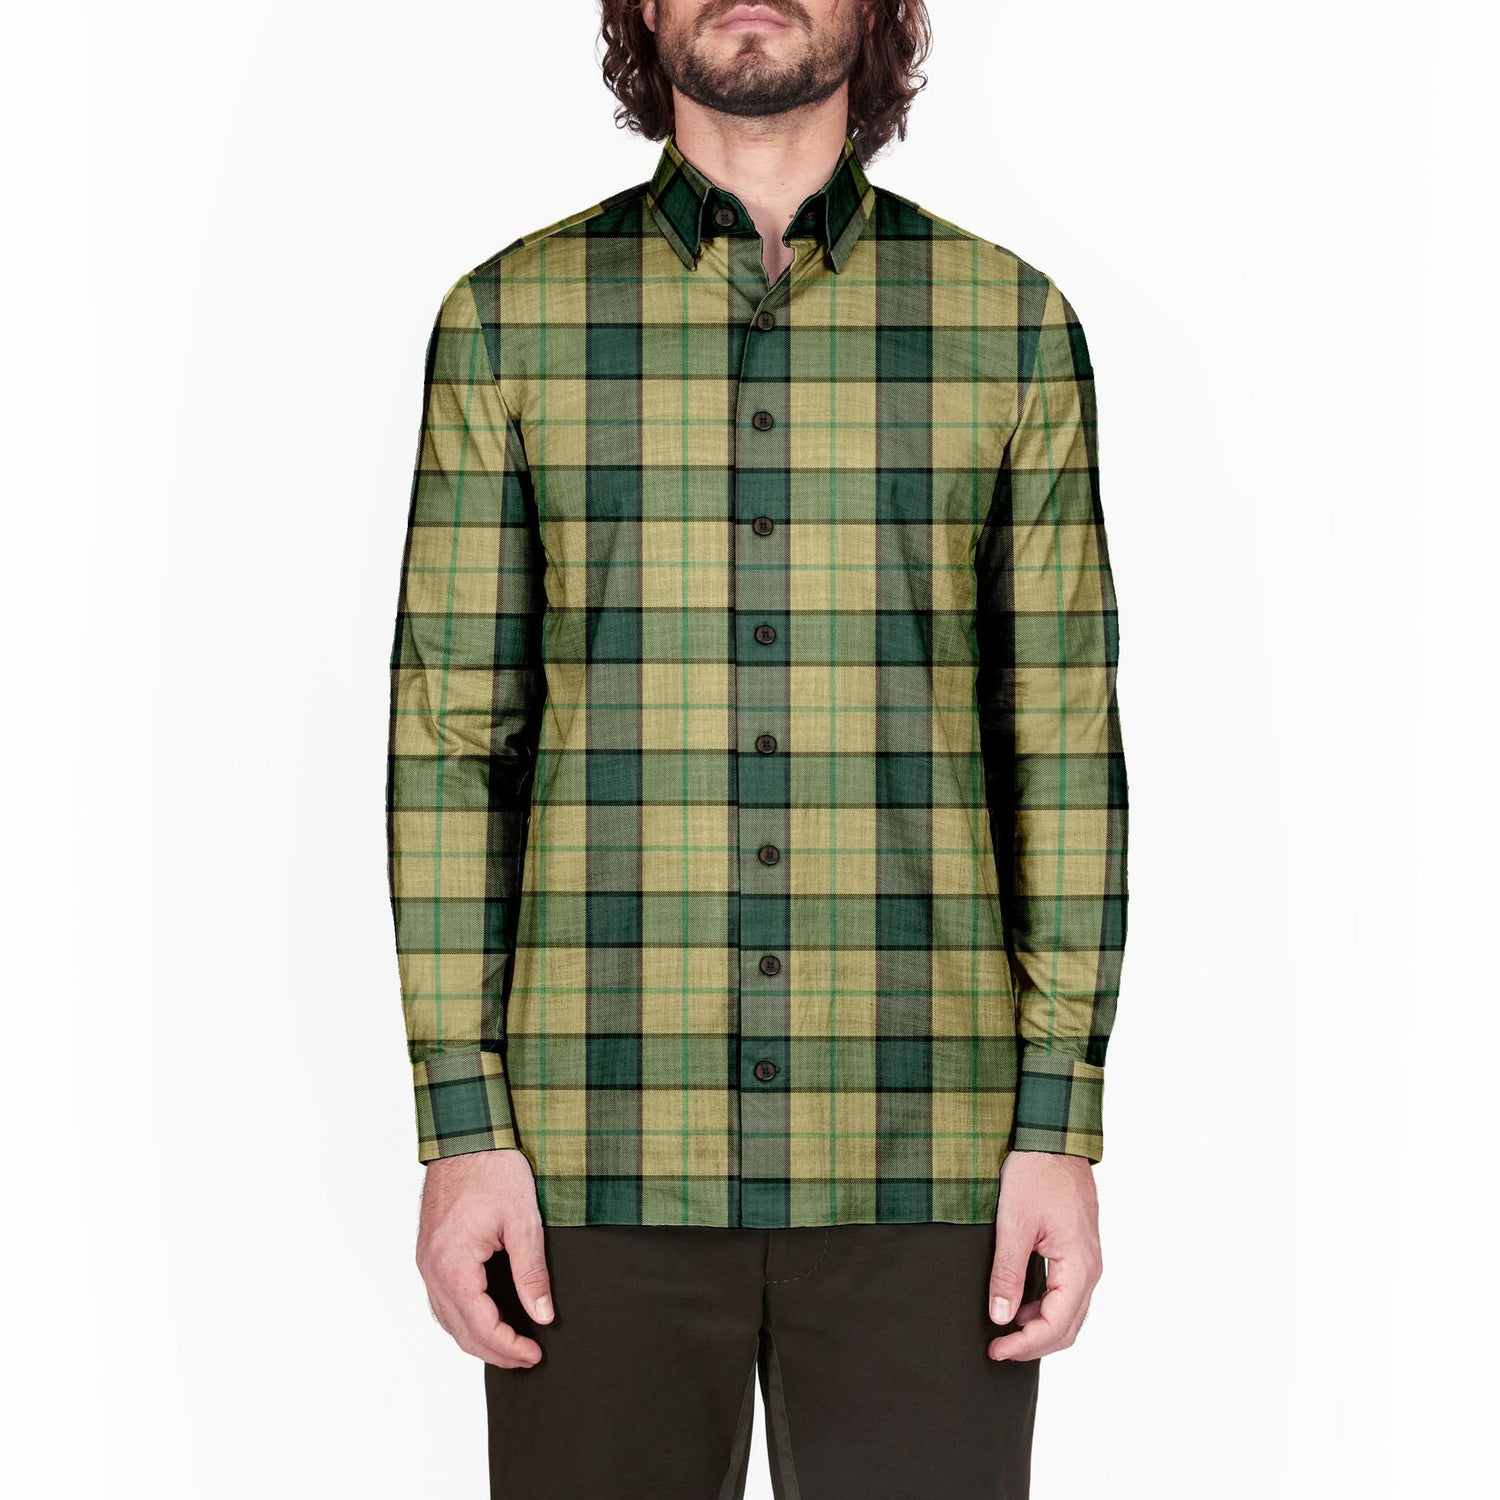 The Wendy Torrance Plaid Flannel